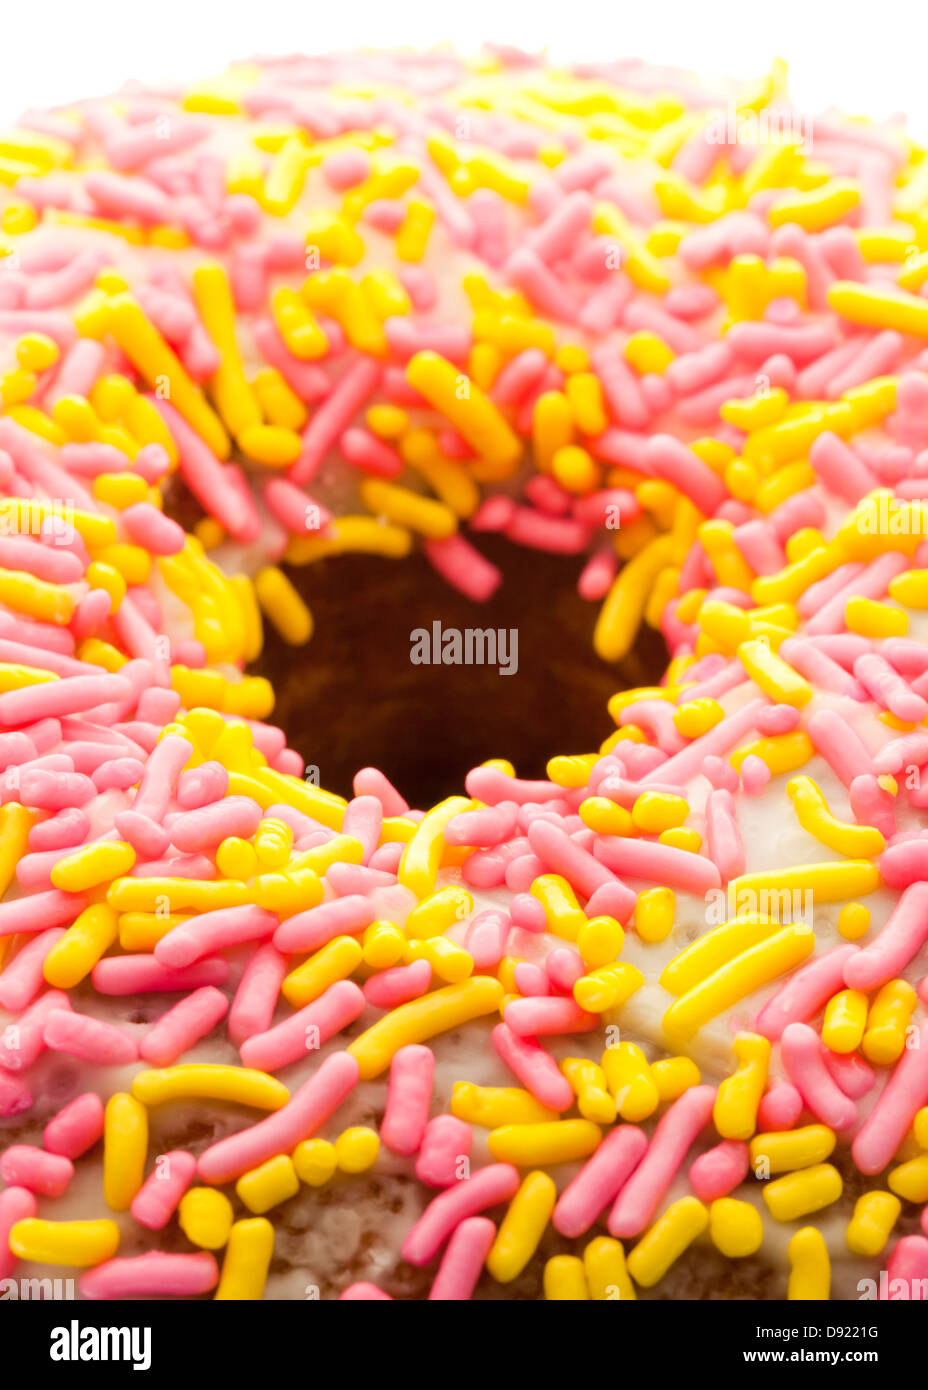 Close up of sprinkle donut - Stock Image